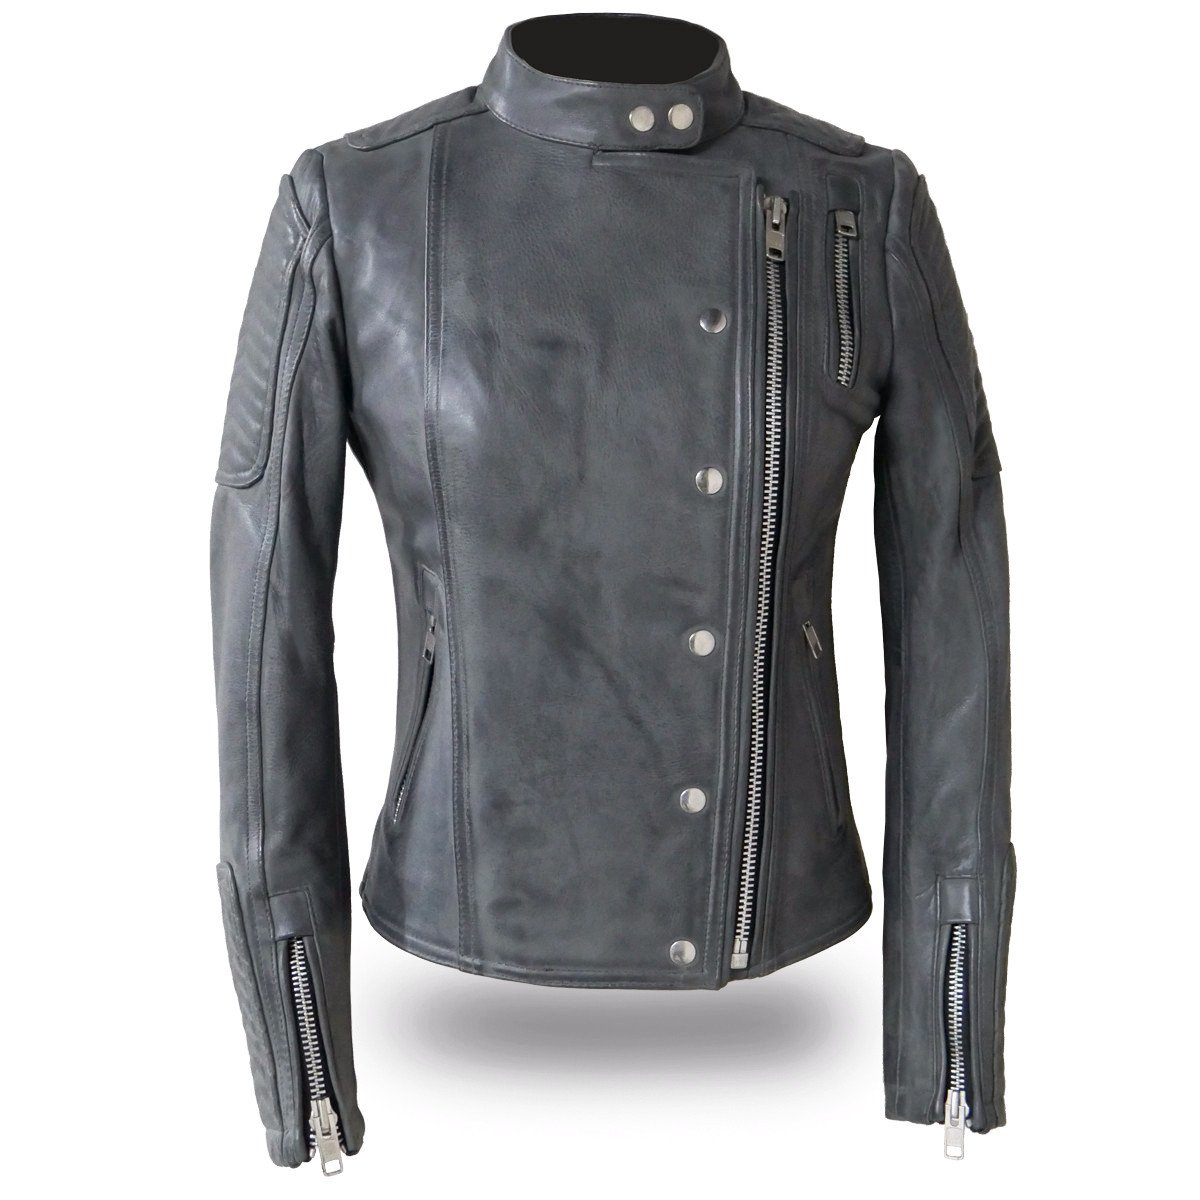 Warrior Princess - Women's Black or Gray Leather Scooter Jacket - FIL187CJZ